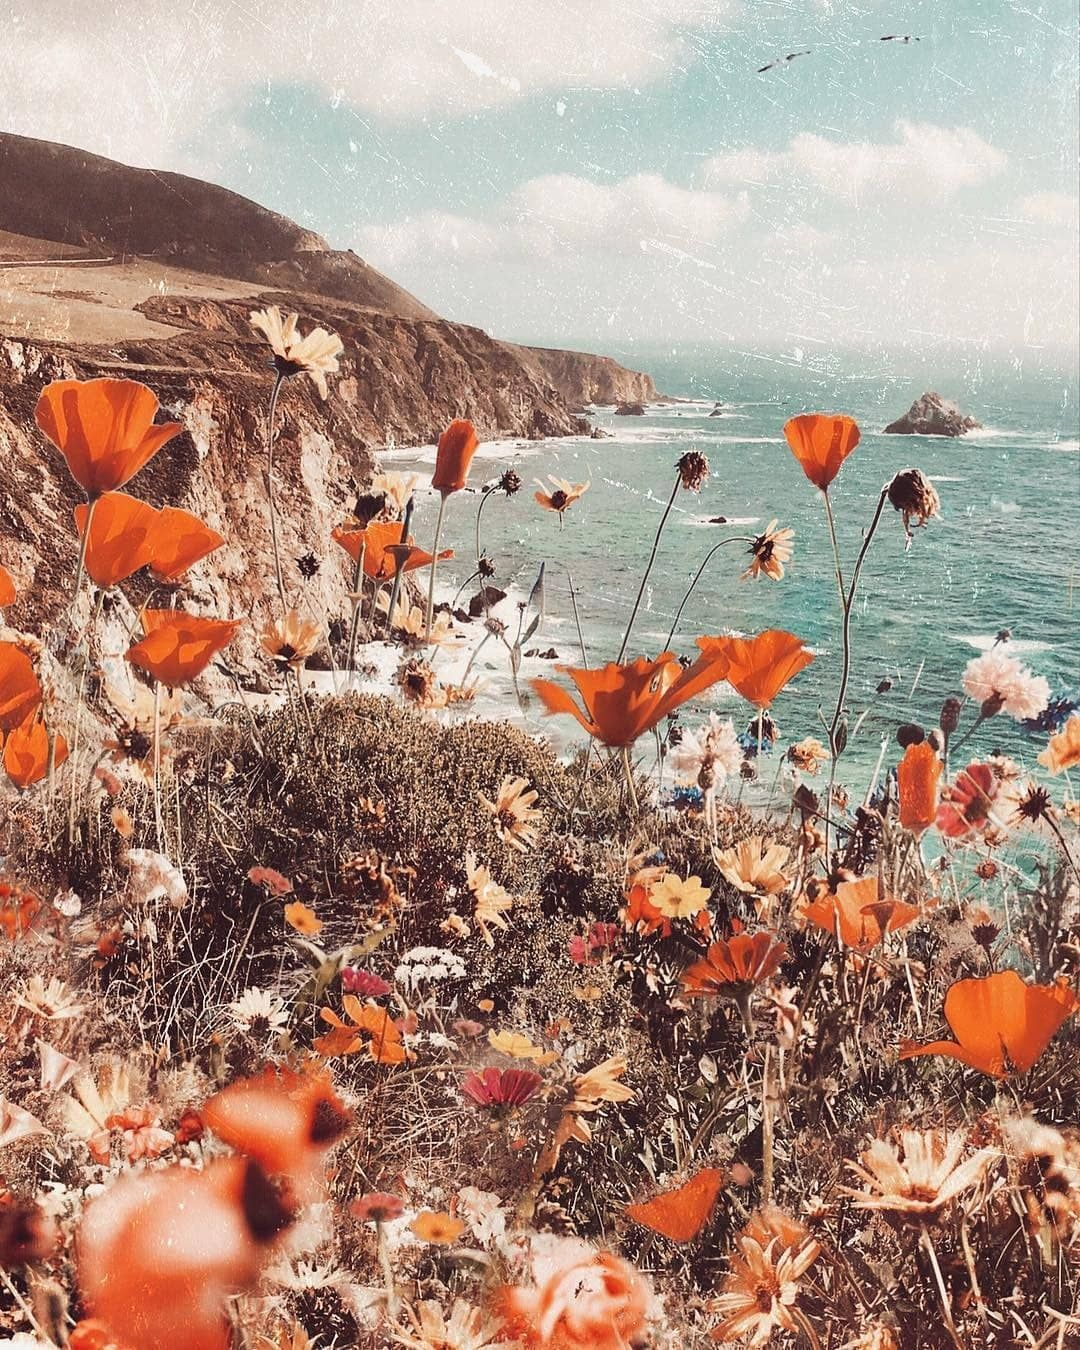 Find Me Outside Soaking Up The Sun Cred Odwyer Sio9 Unbaciobabe Find Me Outside Picture Collage Wall Aesthetic Backgrounds Aesthetic Wallpapers